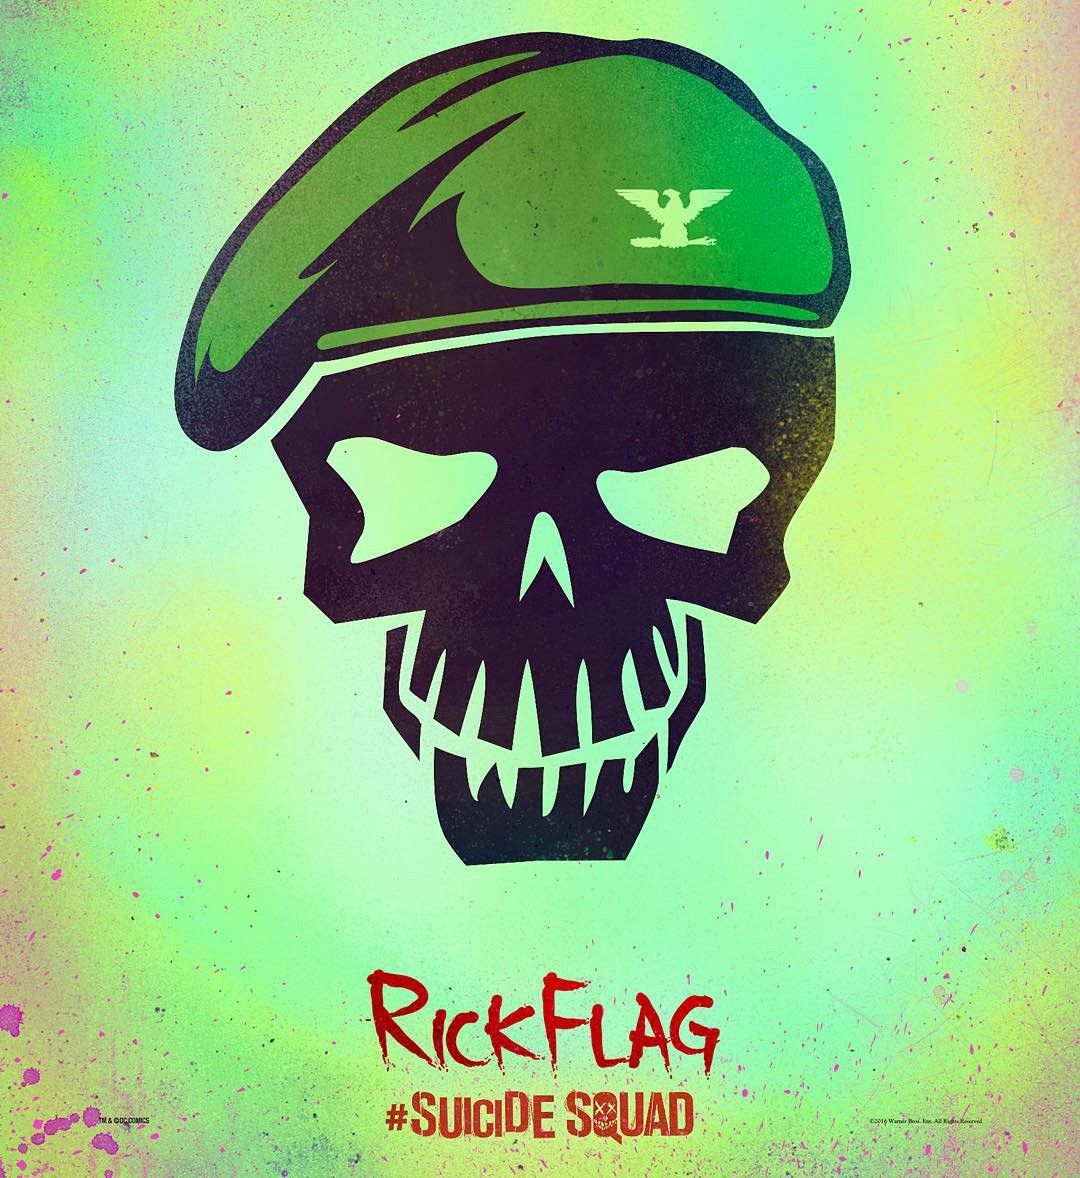 Suicide Squad Rick Flag character poster First Suicide Squad Posters Arrive: Worst. Heroes. Ever.